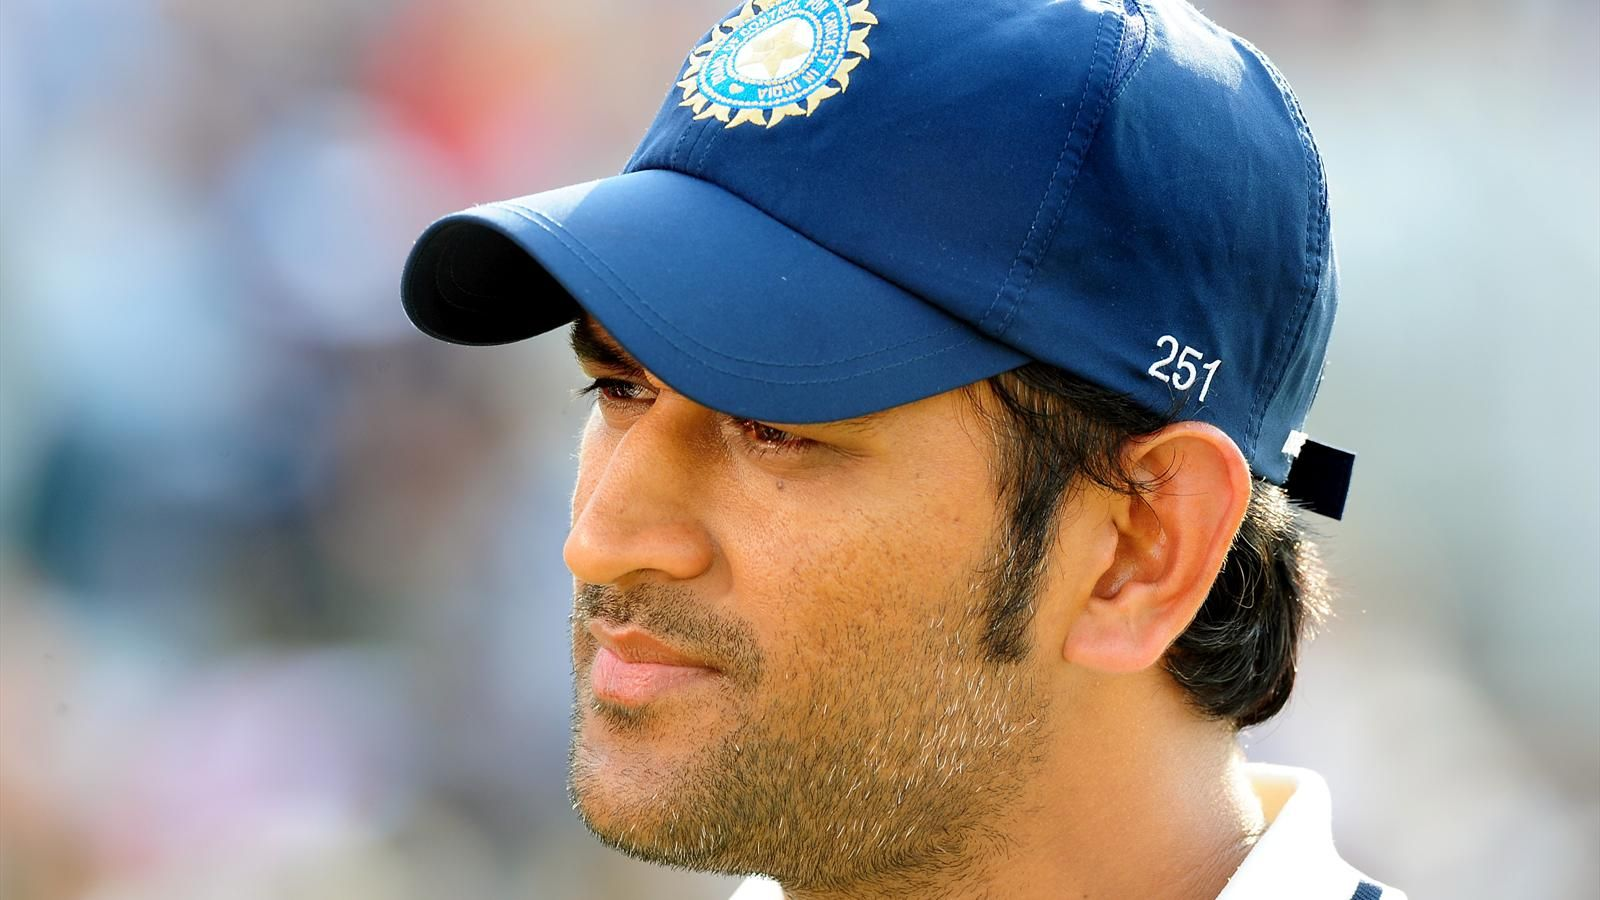 Cute Thala Dhoni Face Look Wondeful Mobile Free Desktop Hd Pictures Background